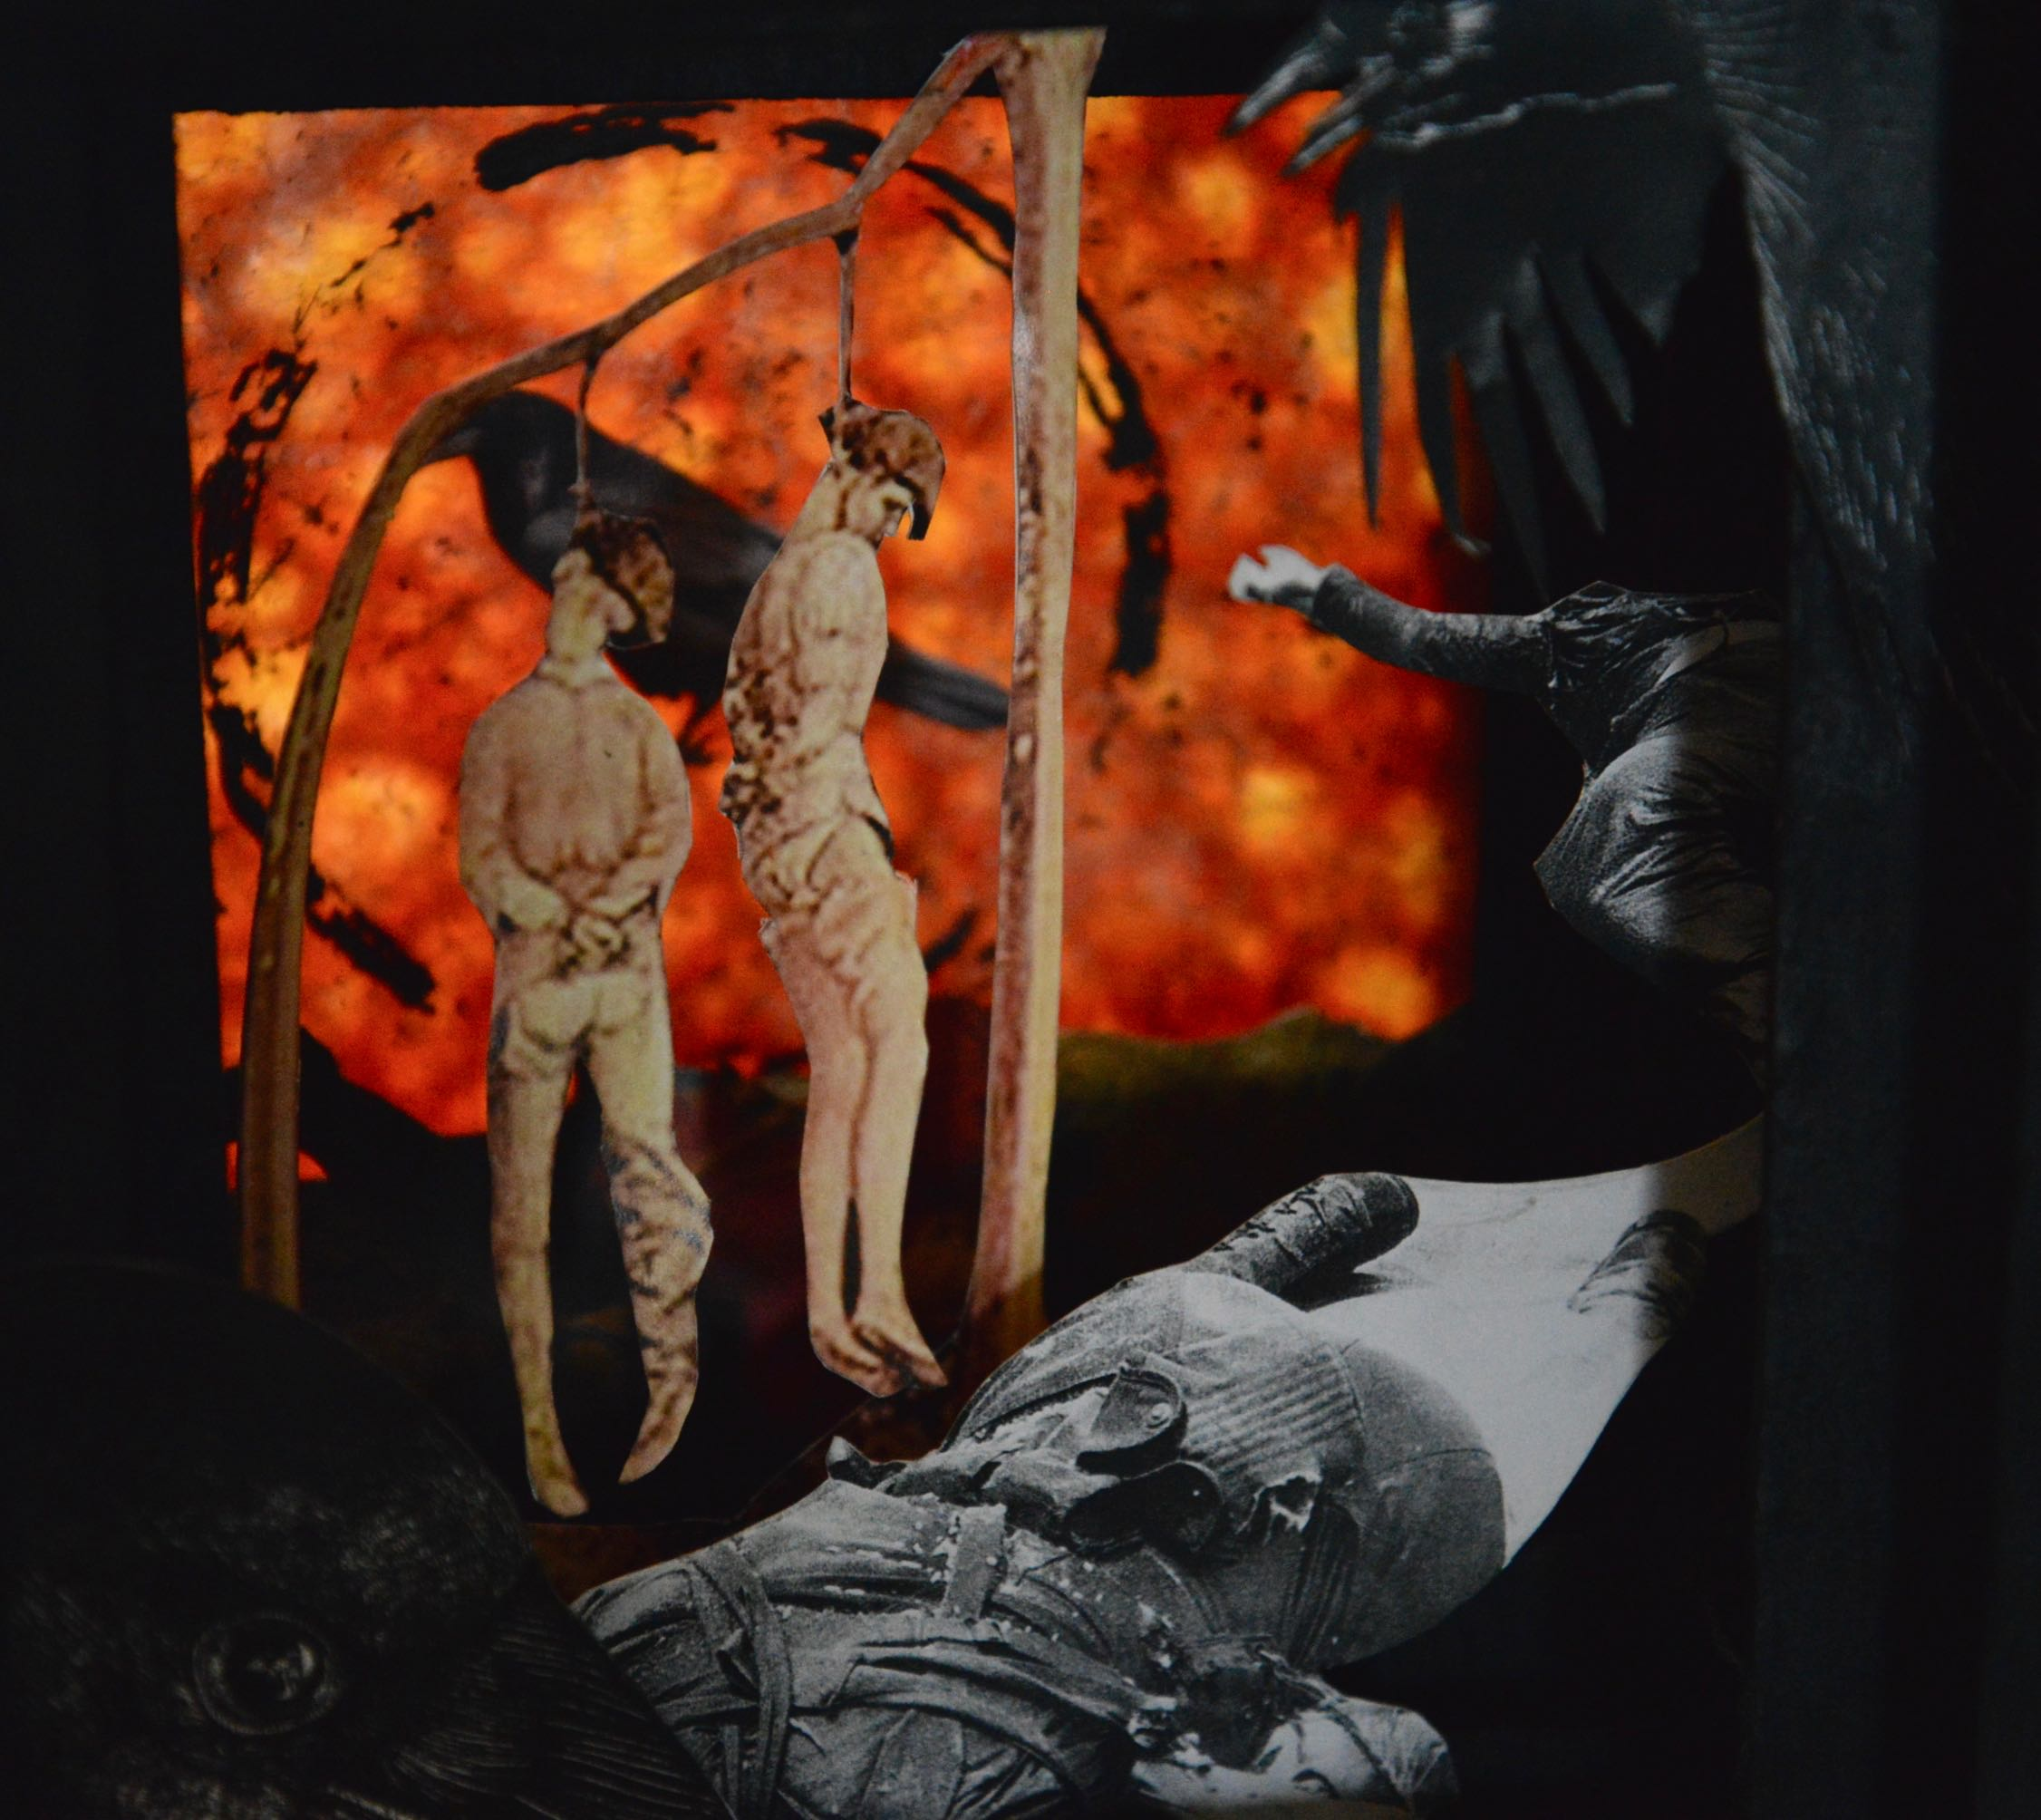 "Lightbox view, Carrion Crow, November 2013, Paper and matt board collage, 9"" X 10"" X 6.5"", 400 CAD"